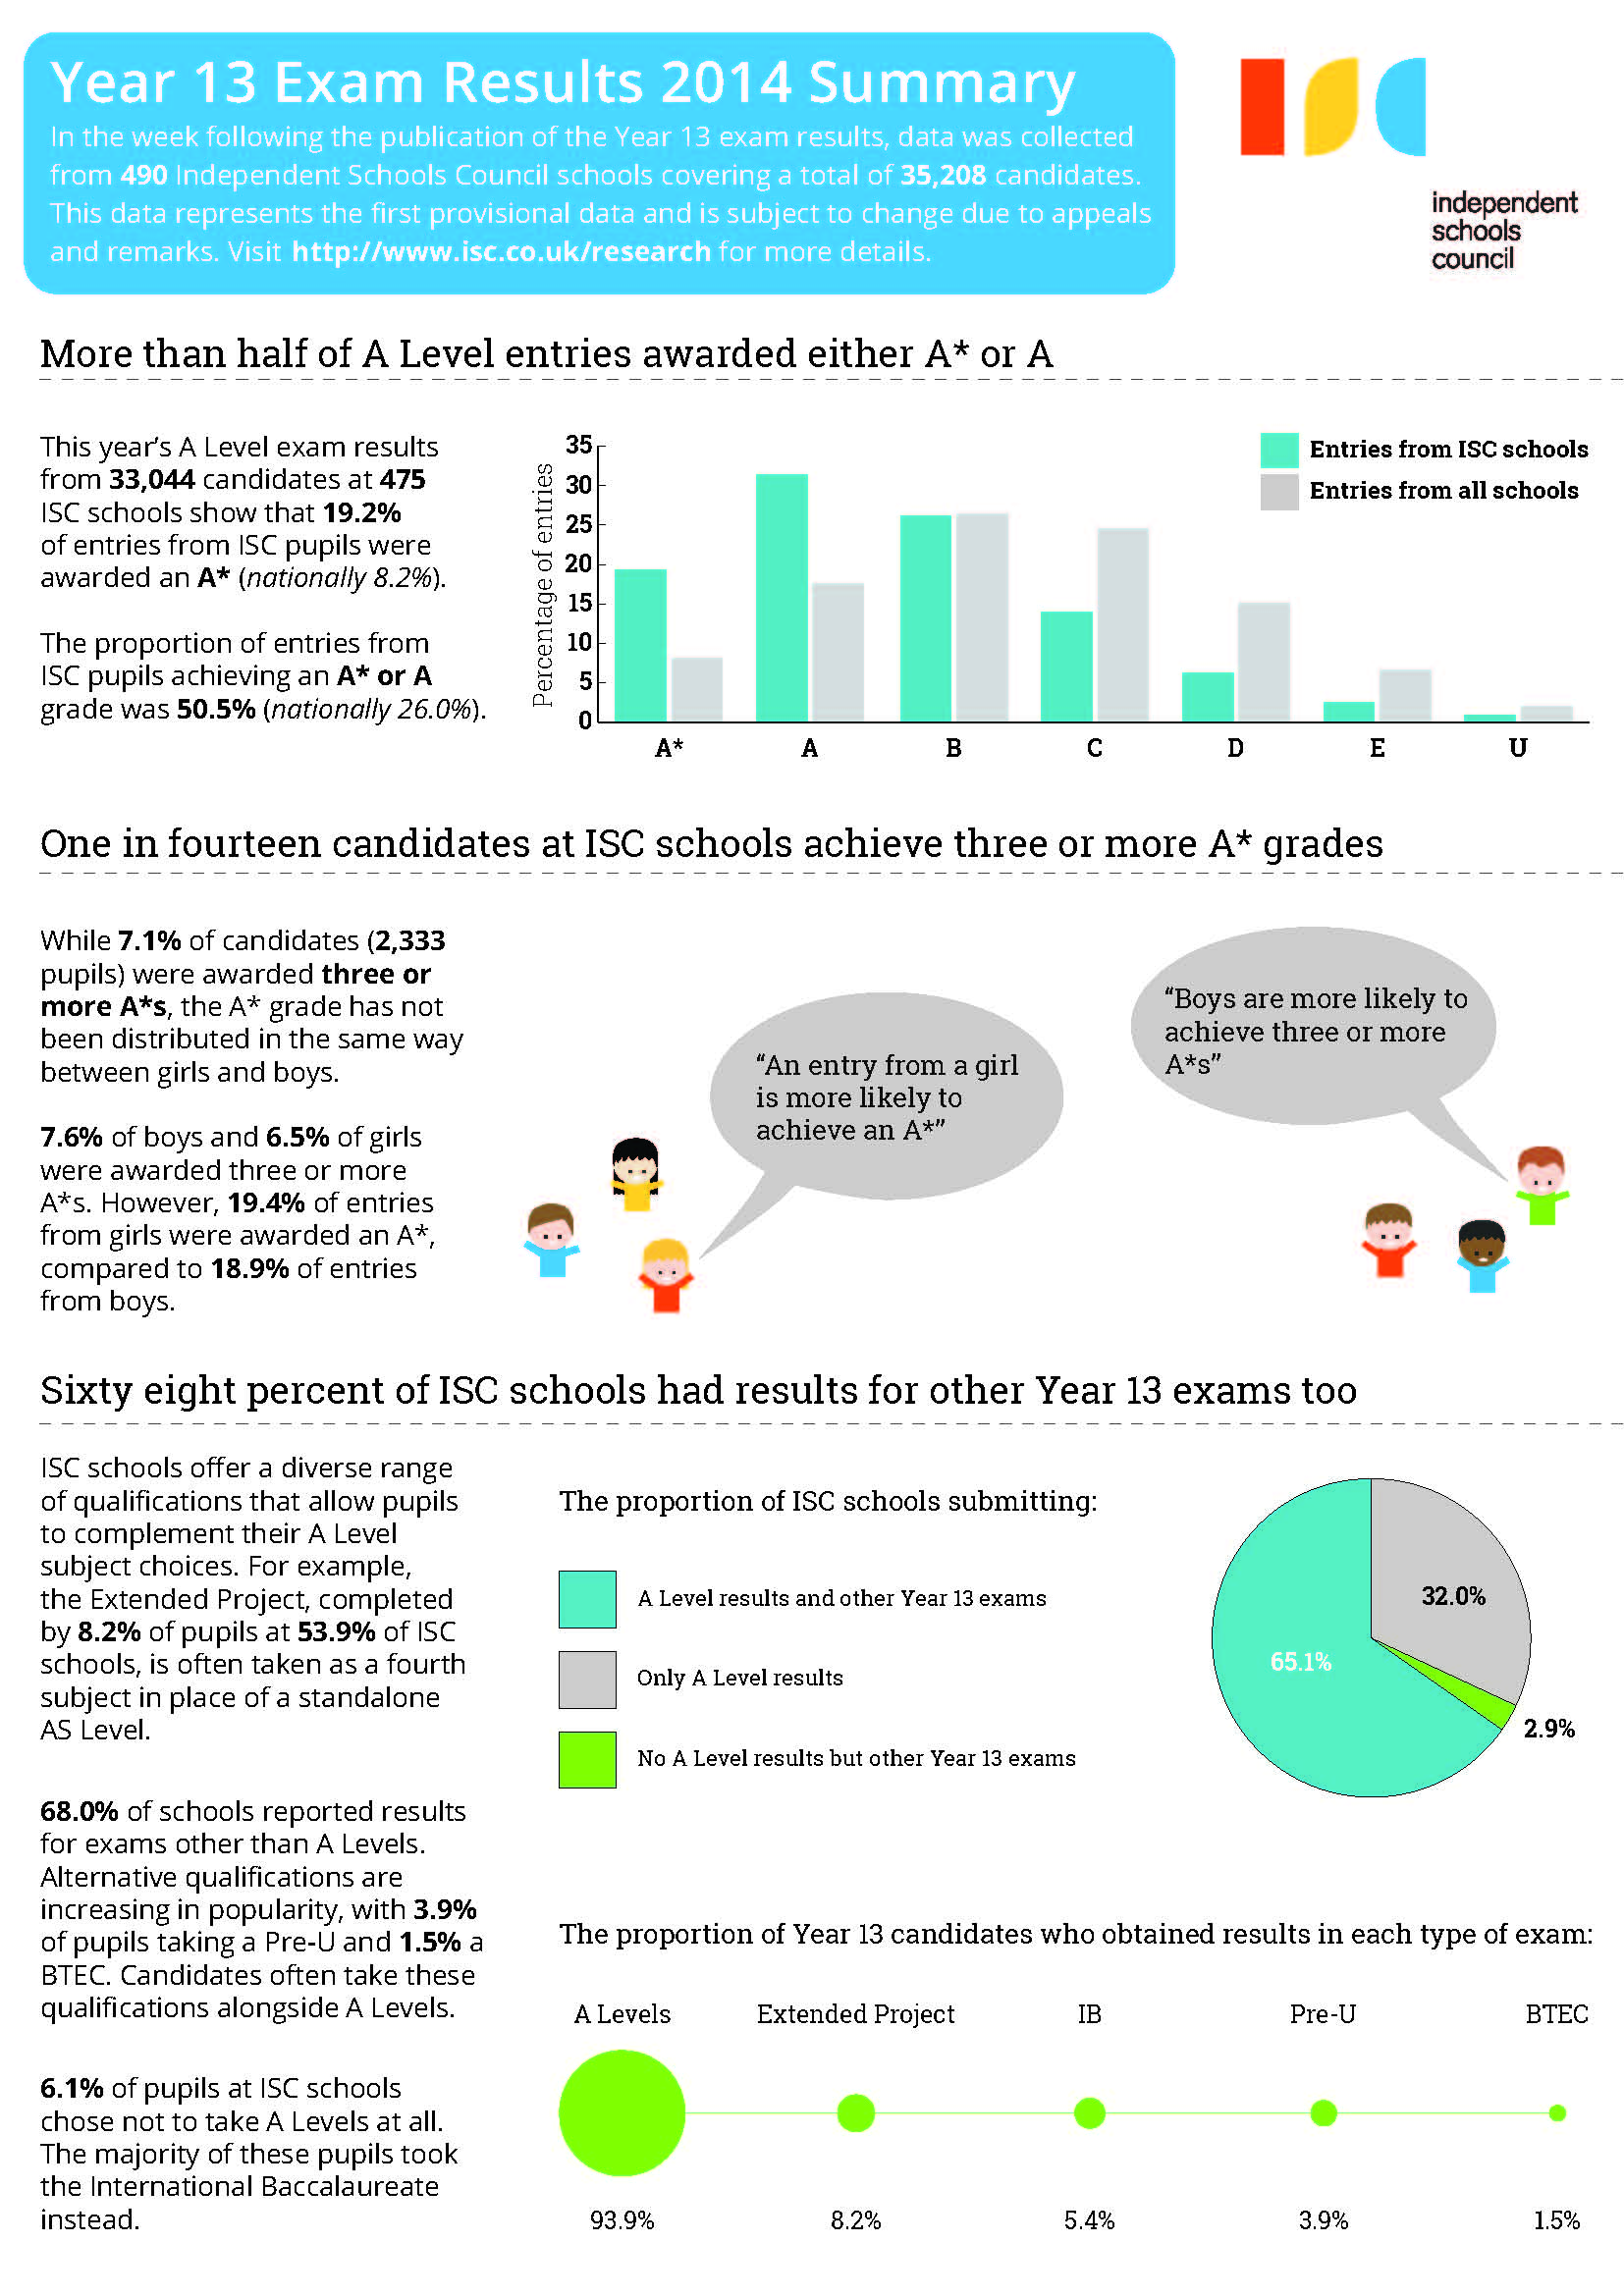 2014_ExamResults_Infographic_Year13_ISC.jpg